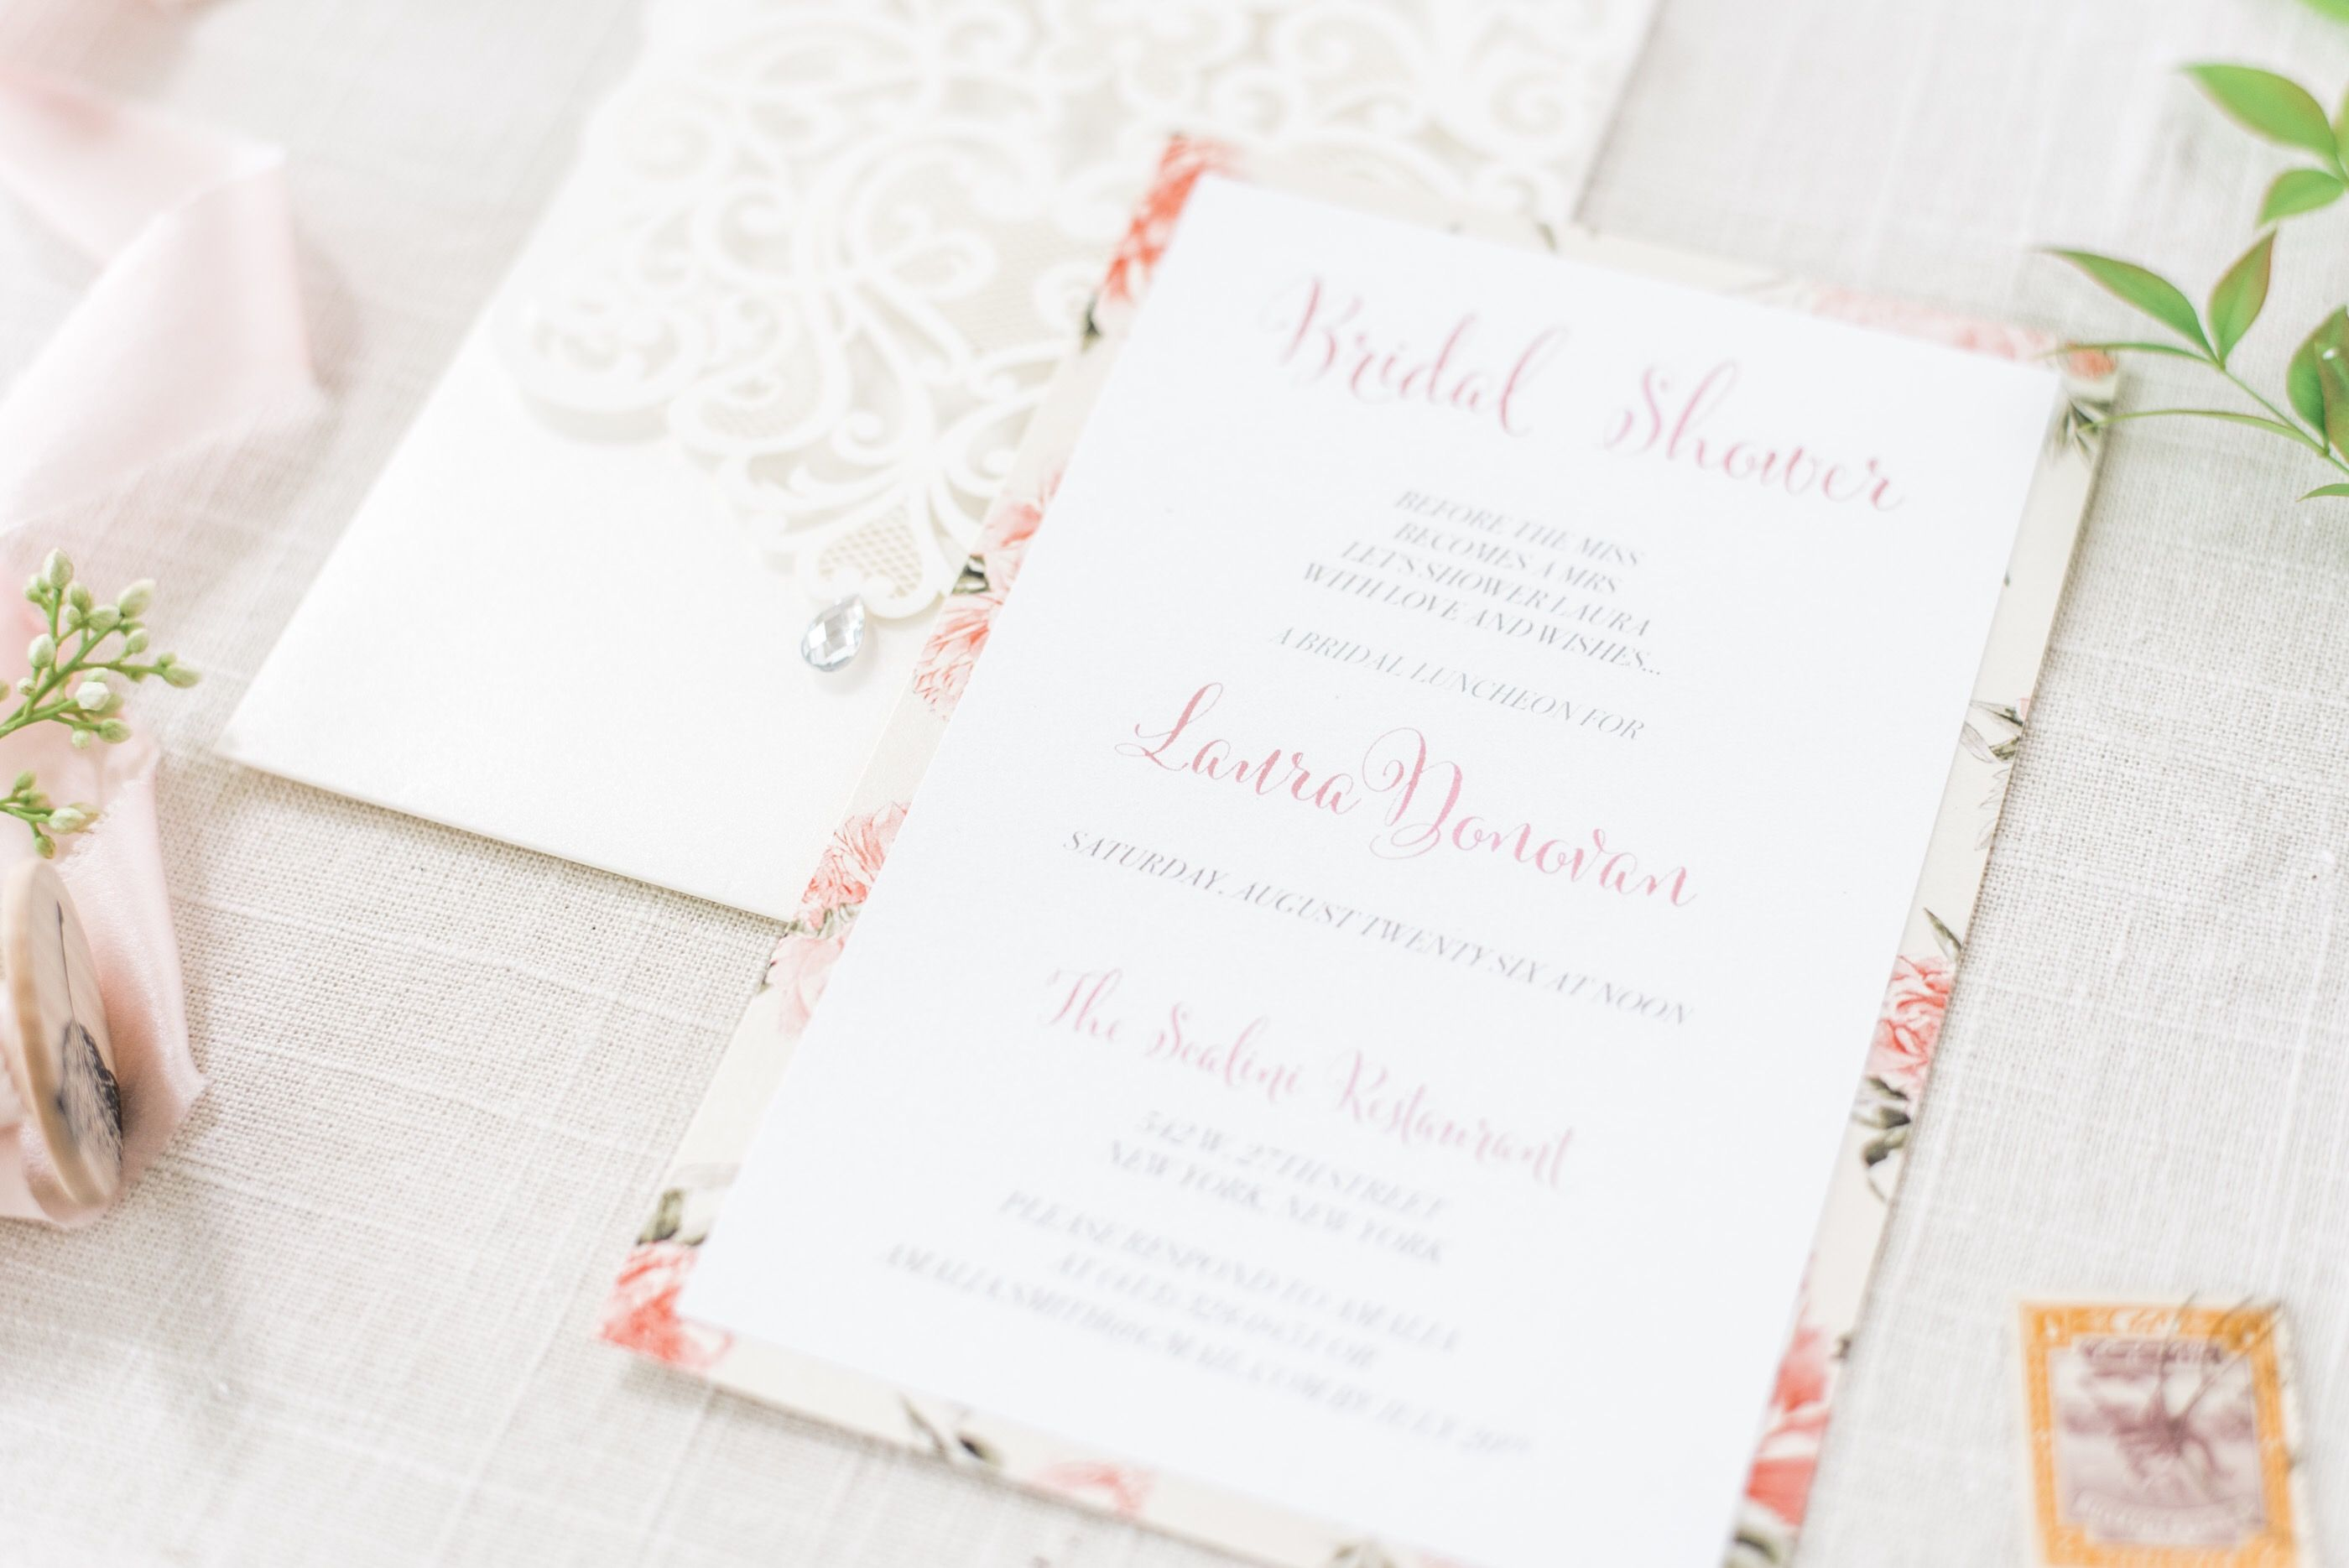 Bridal shower invitation card #bridalshowerinvitation | Invitations ...